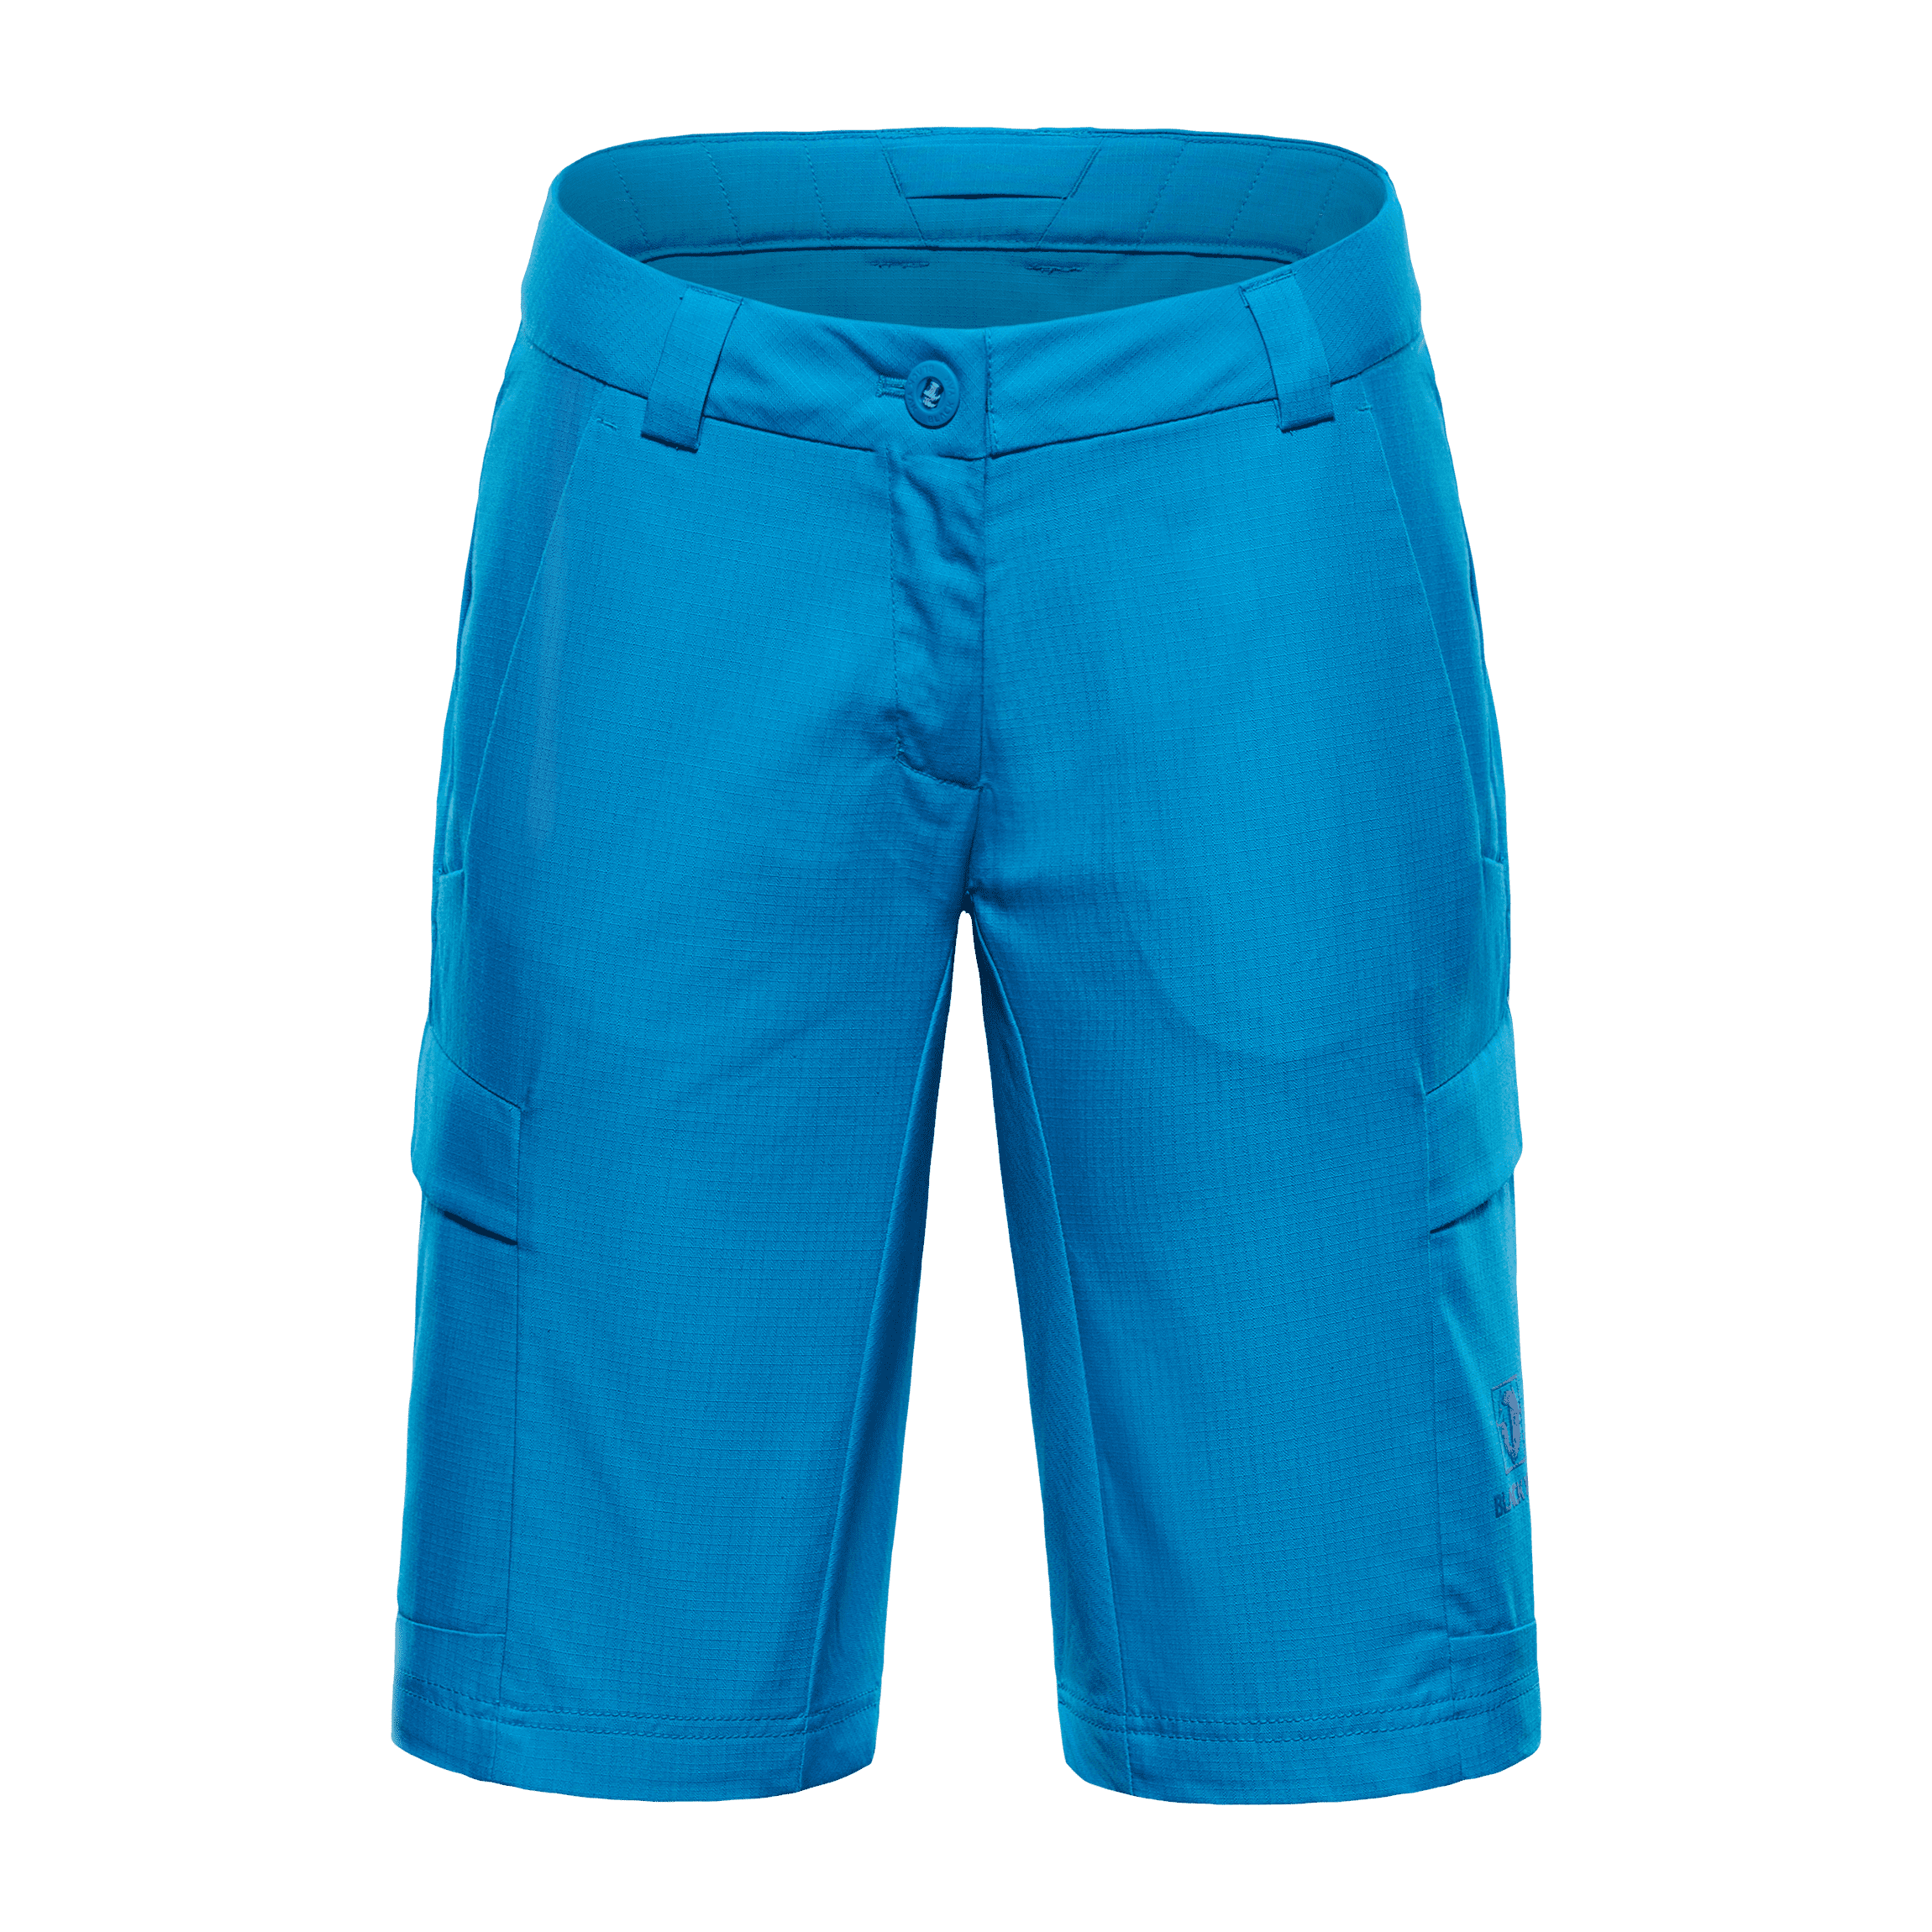 RIPSTOP REINFORCED SHORTS